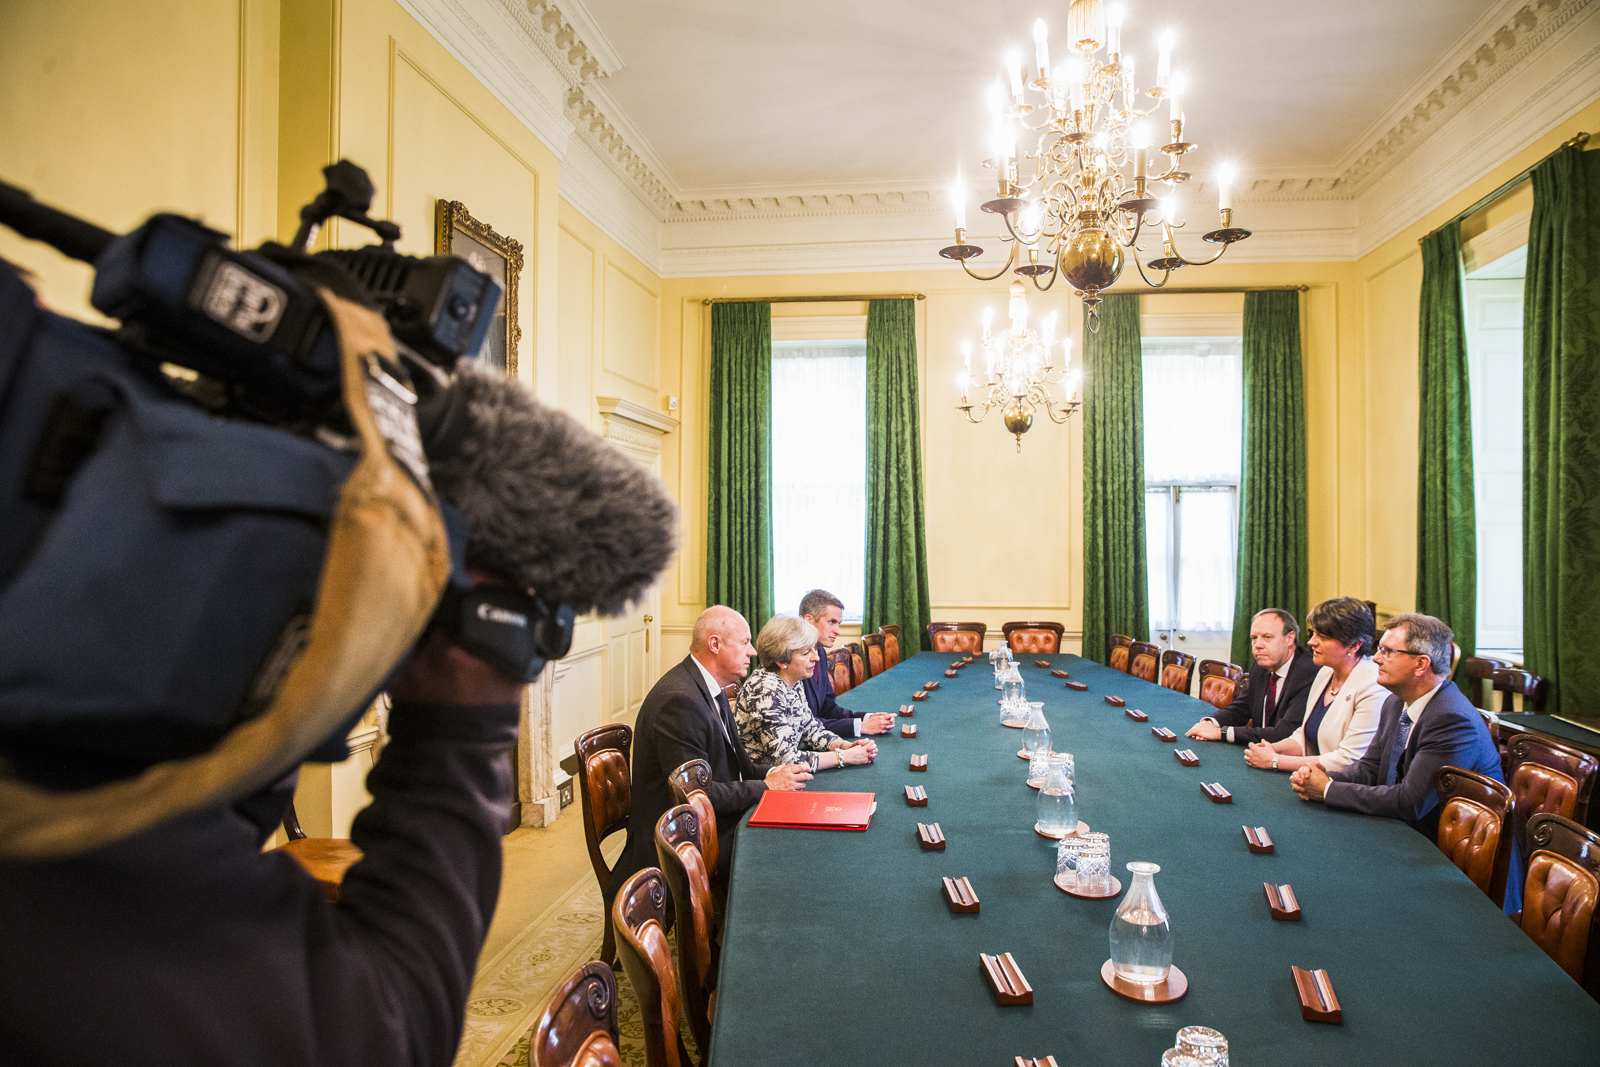 Tory government cabinet meeting with the DUP at number 10 Downing Street